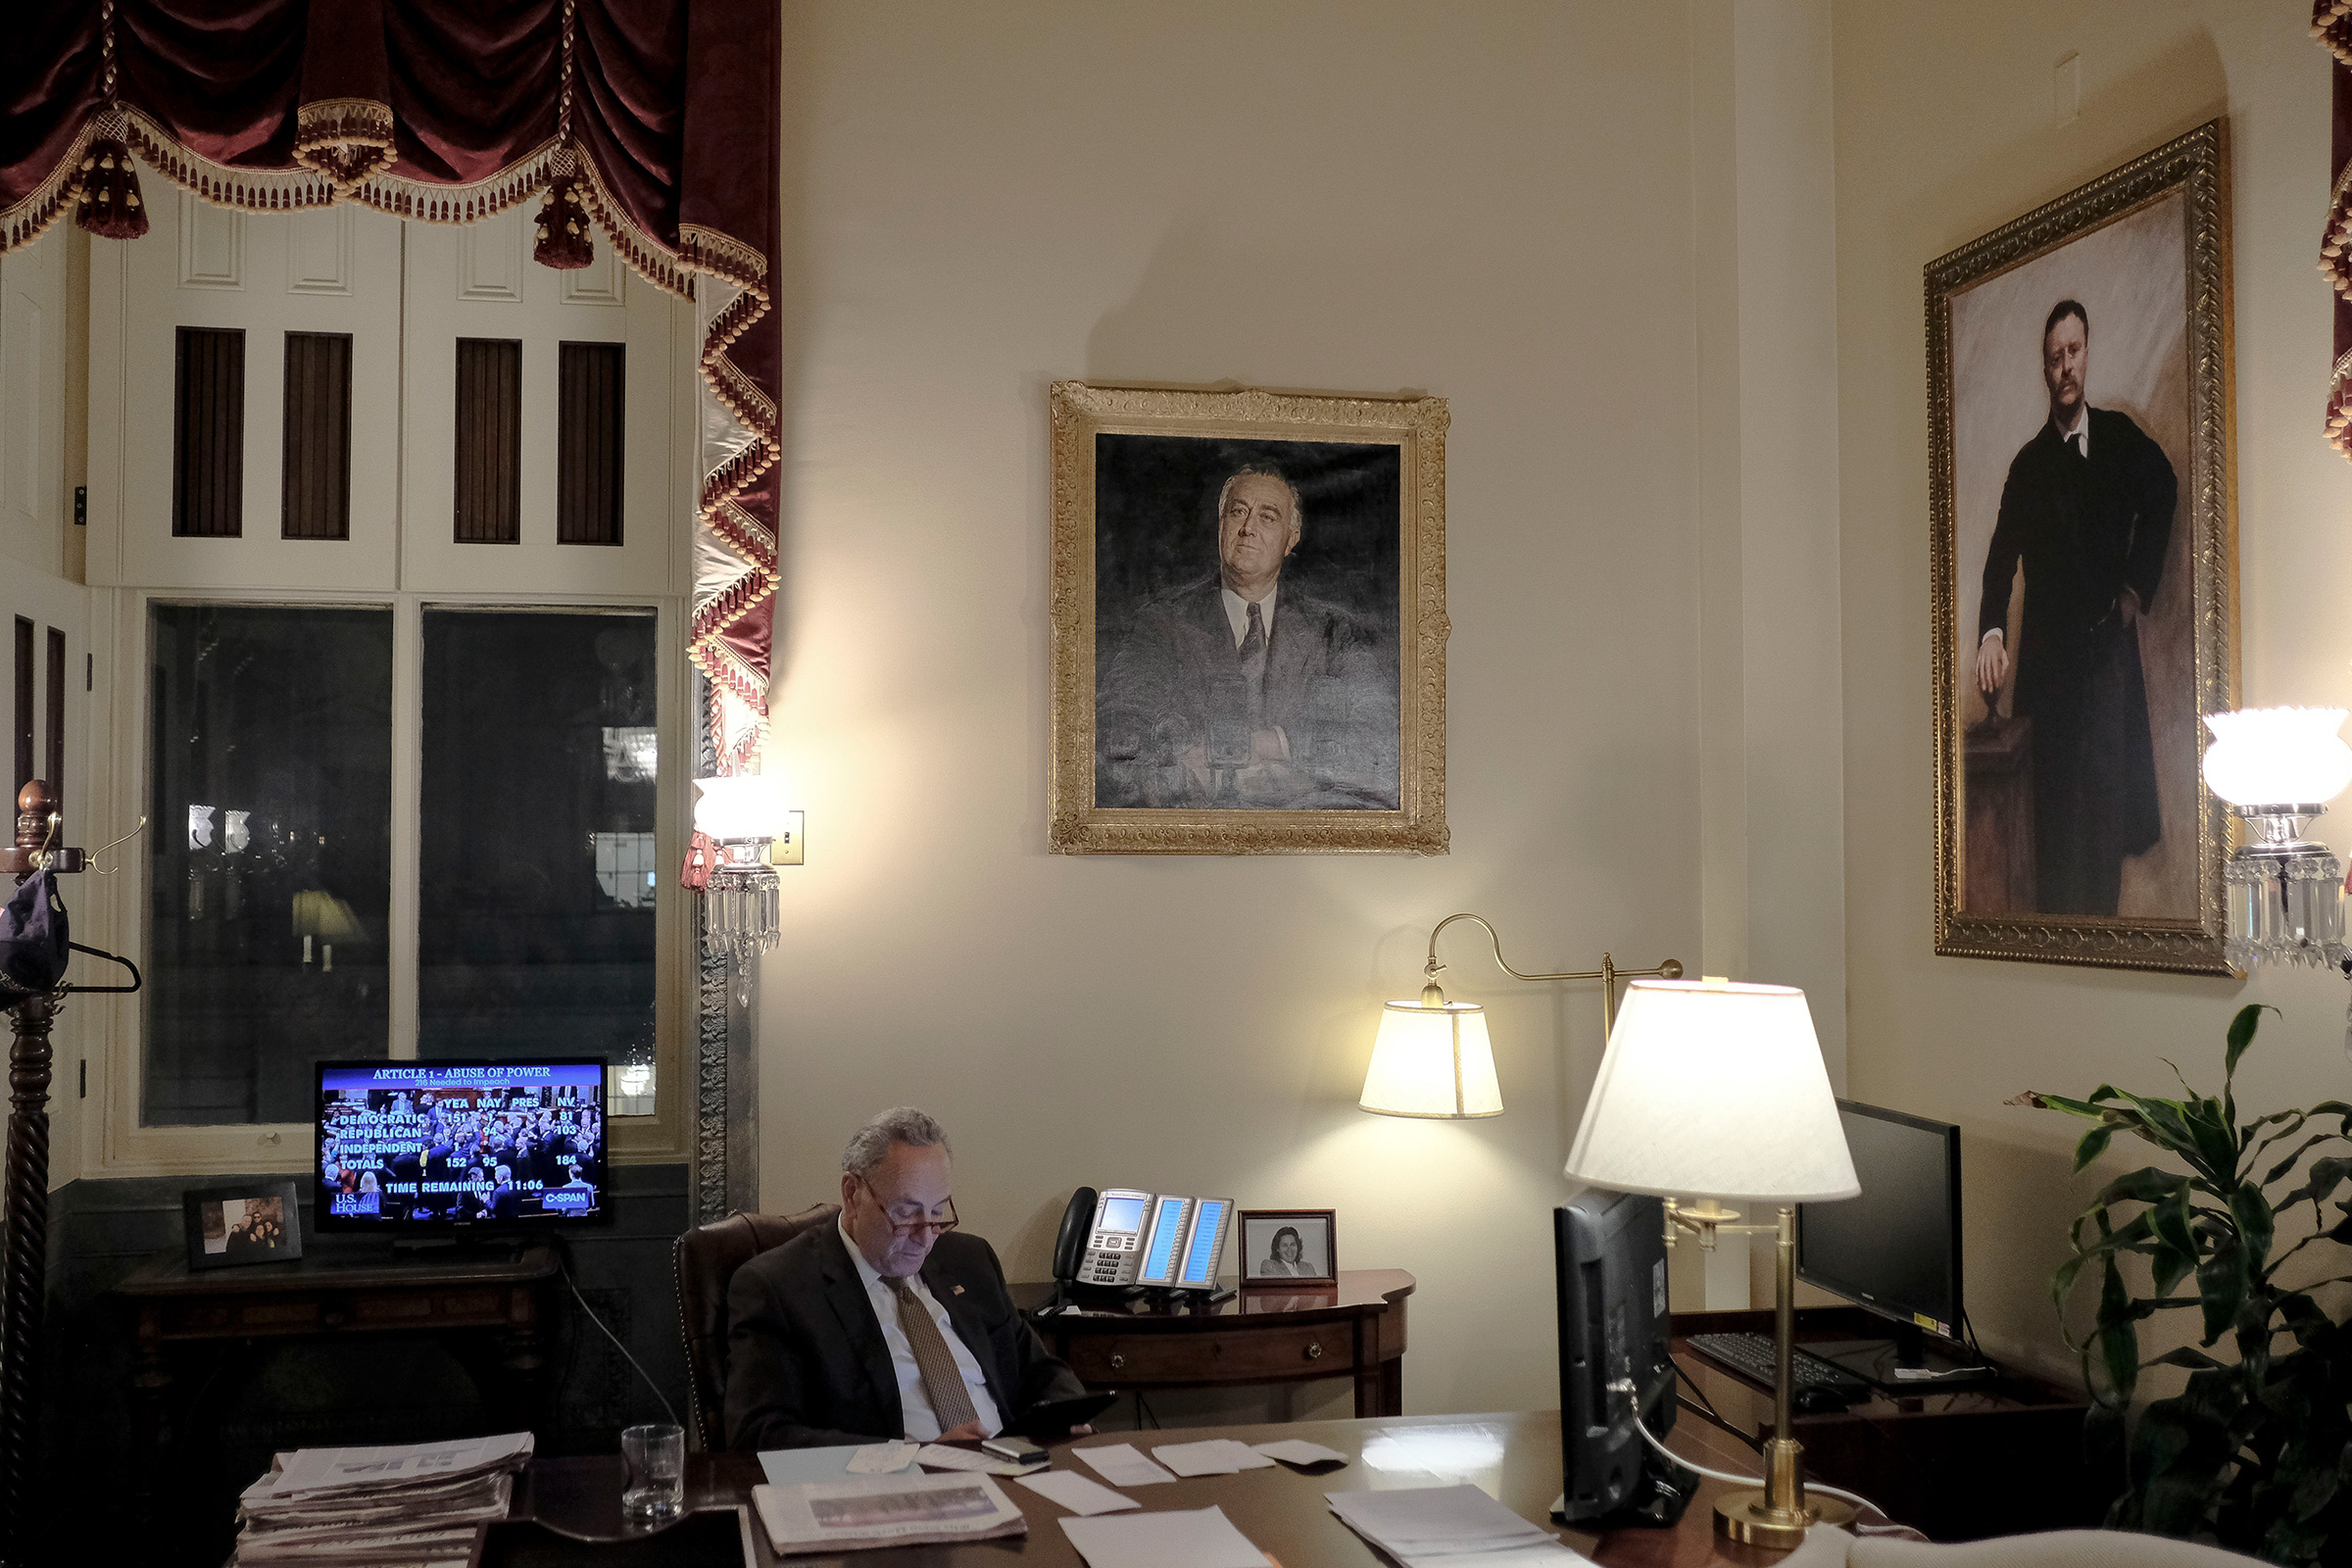 Senate Minority Leader Chuck Schumer (D-N.Y.) watches the House vote on the articles of impeachment in his office at the Capitol in Washington, D.C., on Dec. 18, 2019.